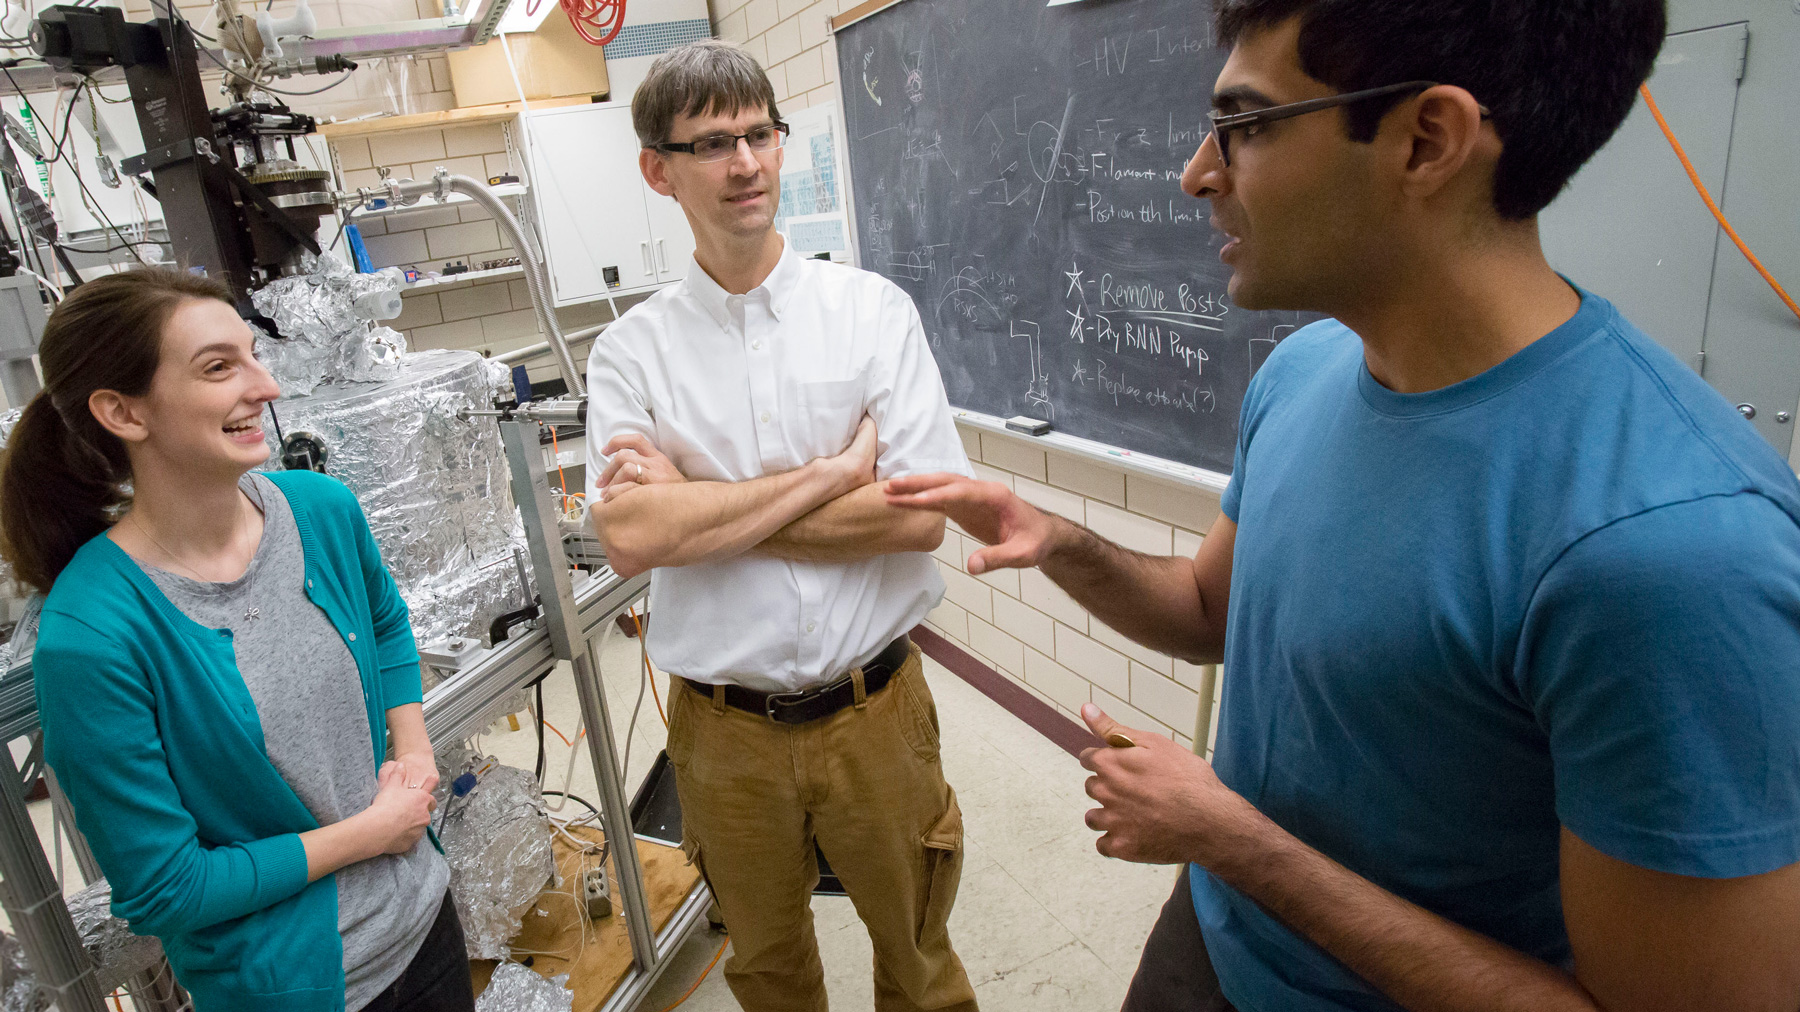 Professor of Physics Peter Abbamonte (center) works with graduate students Anshul Kogar (right) and Mindy Rak (left) in his laboratory at the Frederick Seitz Materials Research Laboratory. Photo by L. Brian Stauffer,